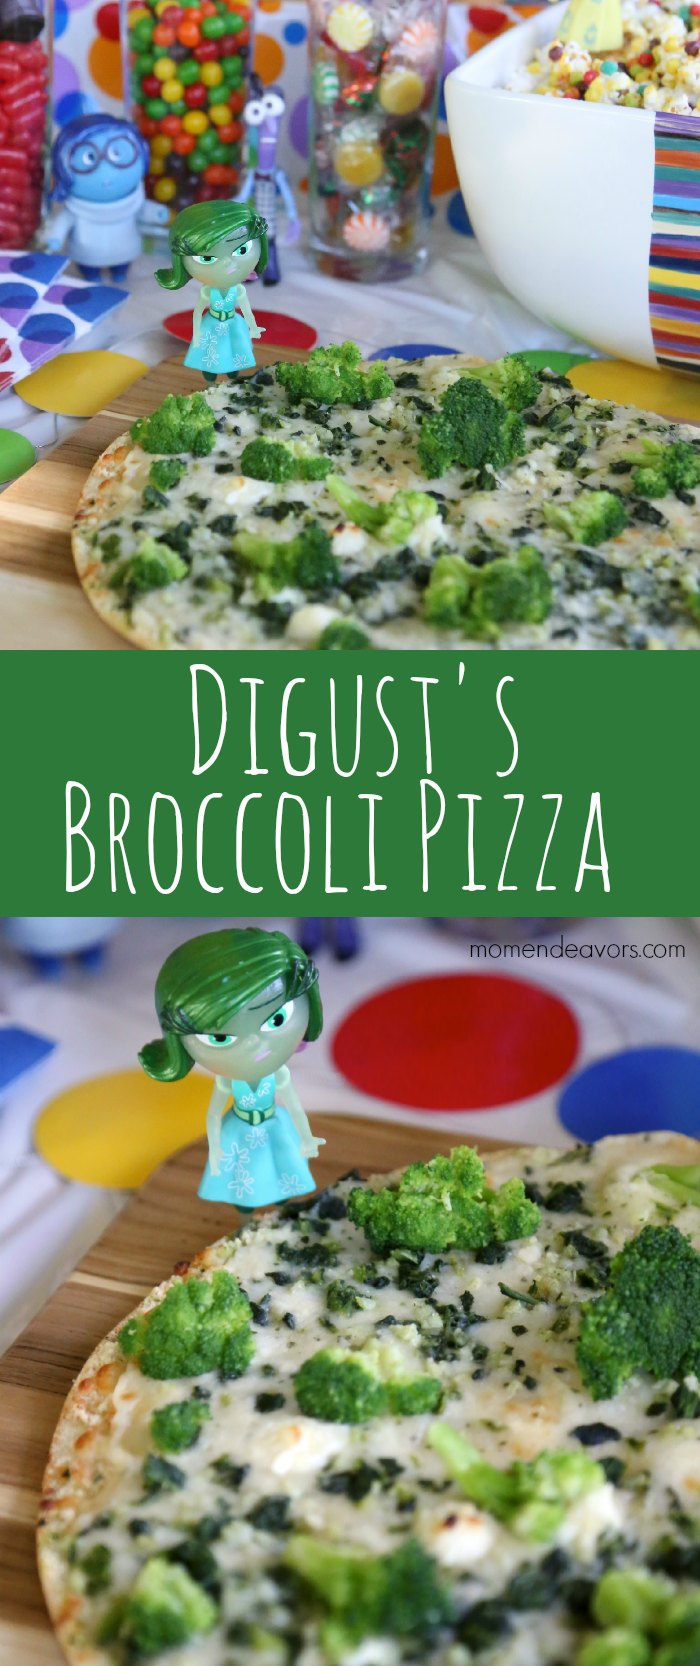 Disgust's Broccoli Pizza